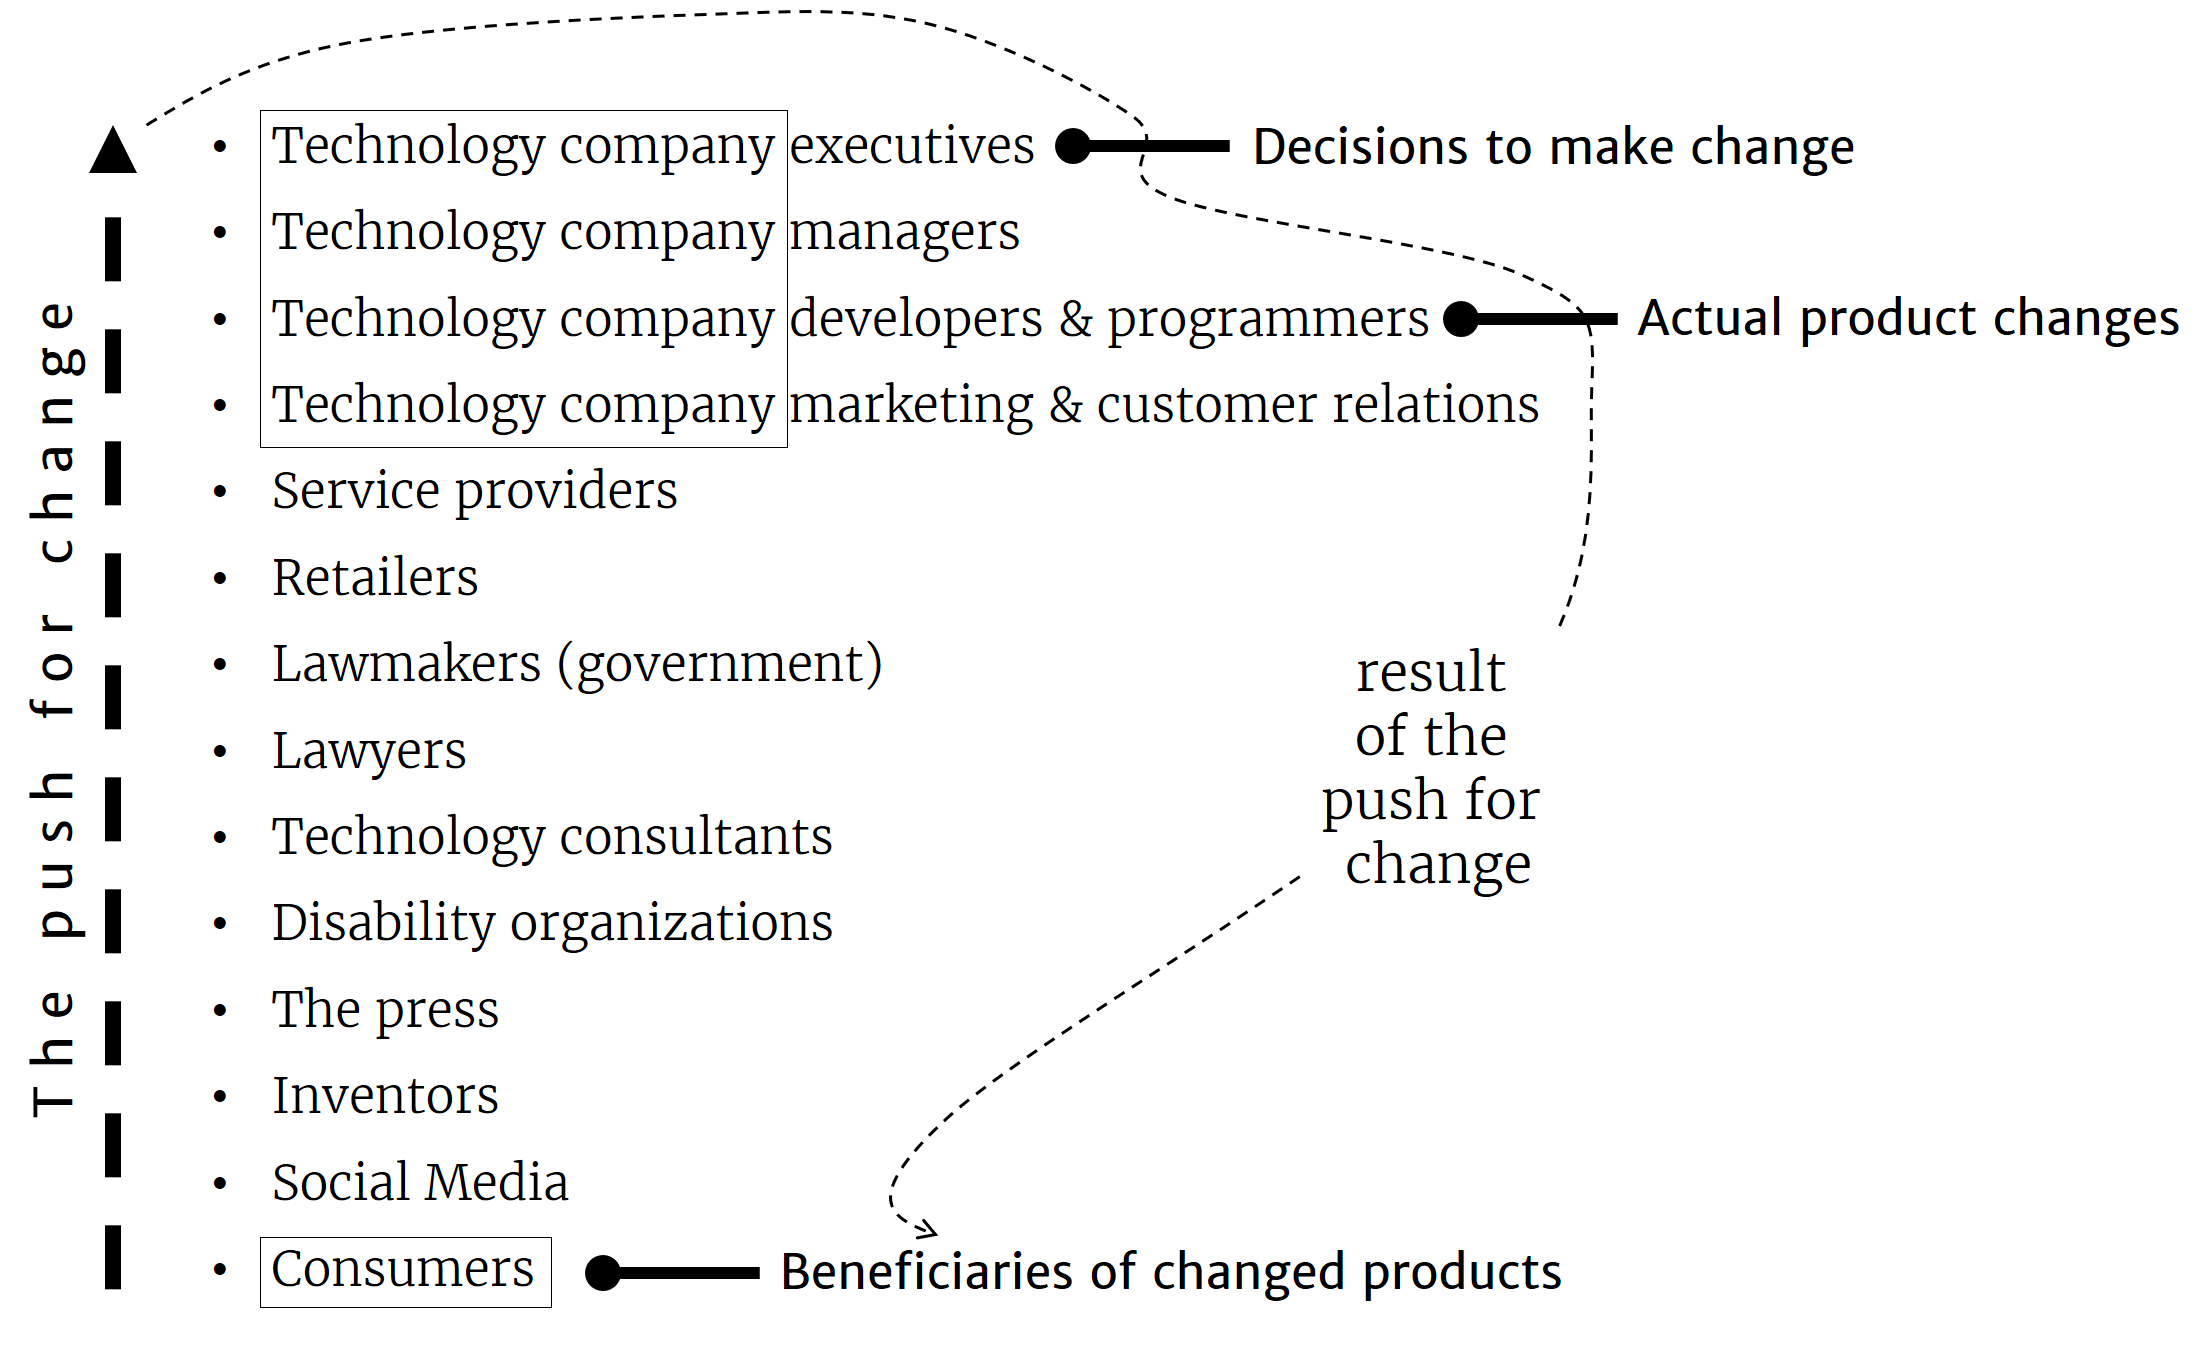 The push for change comes from consumers up through levels of intermediaries such as the press, lawyers and eventually technology company executives. The levels shown match those in the table that follows later in this guide. Decisions to change happen at the executive level, are passed to developers who pass the benefits to consumers.